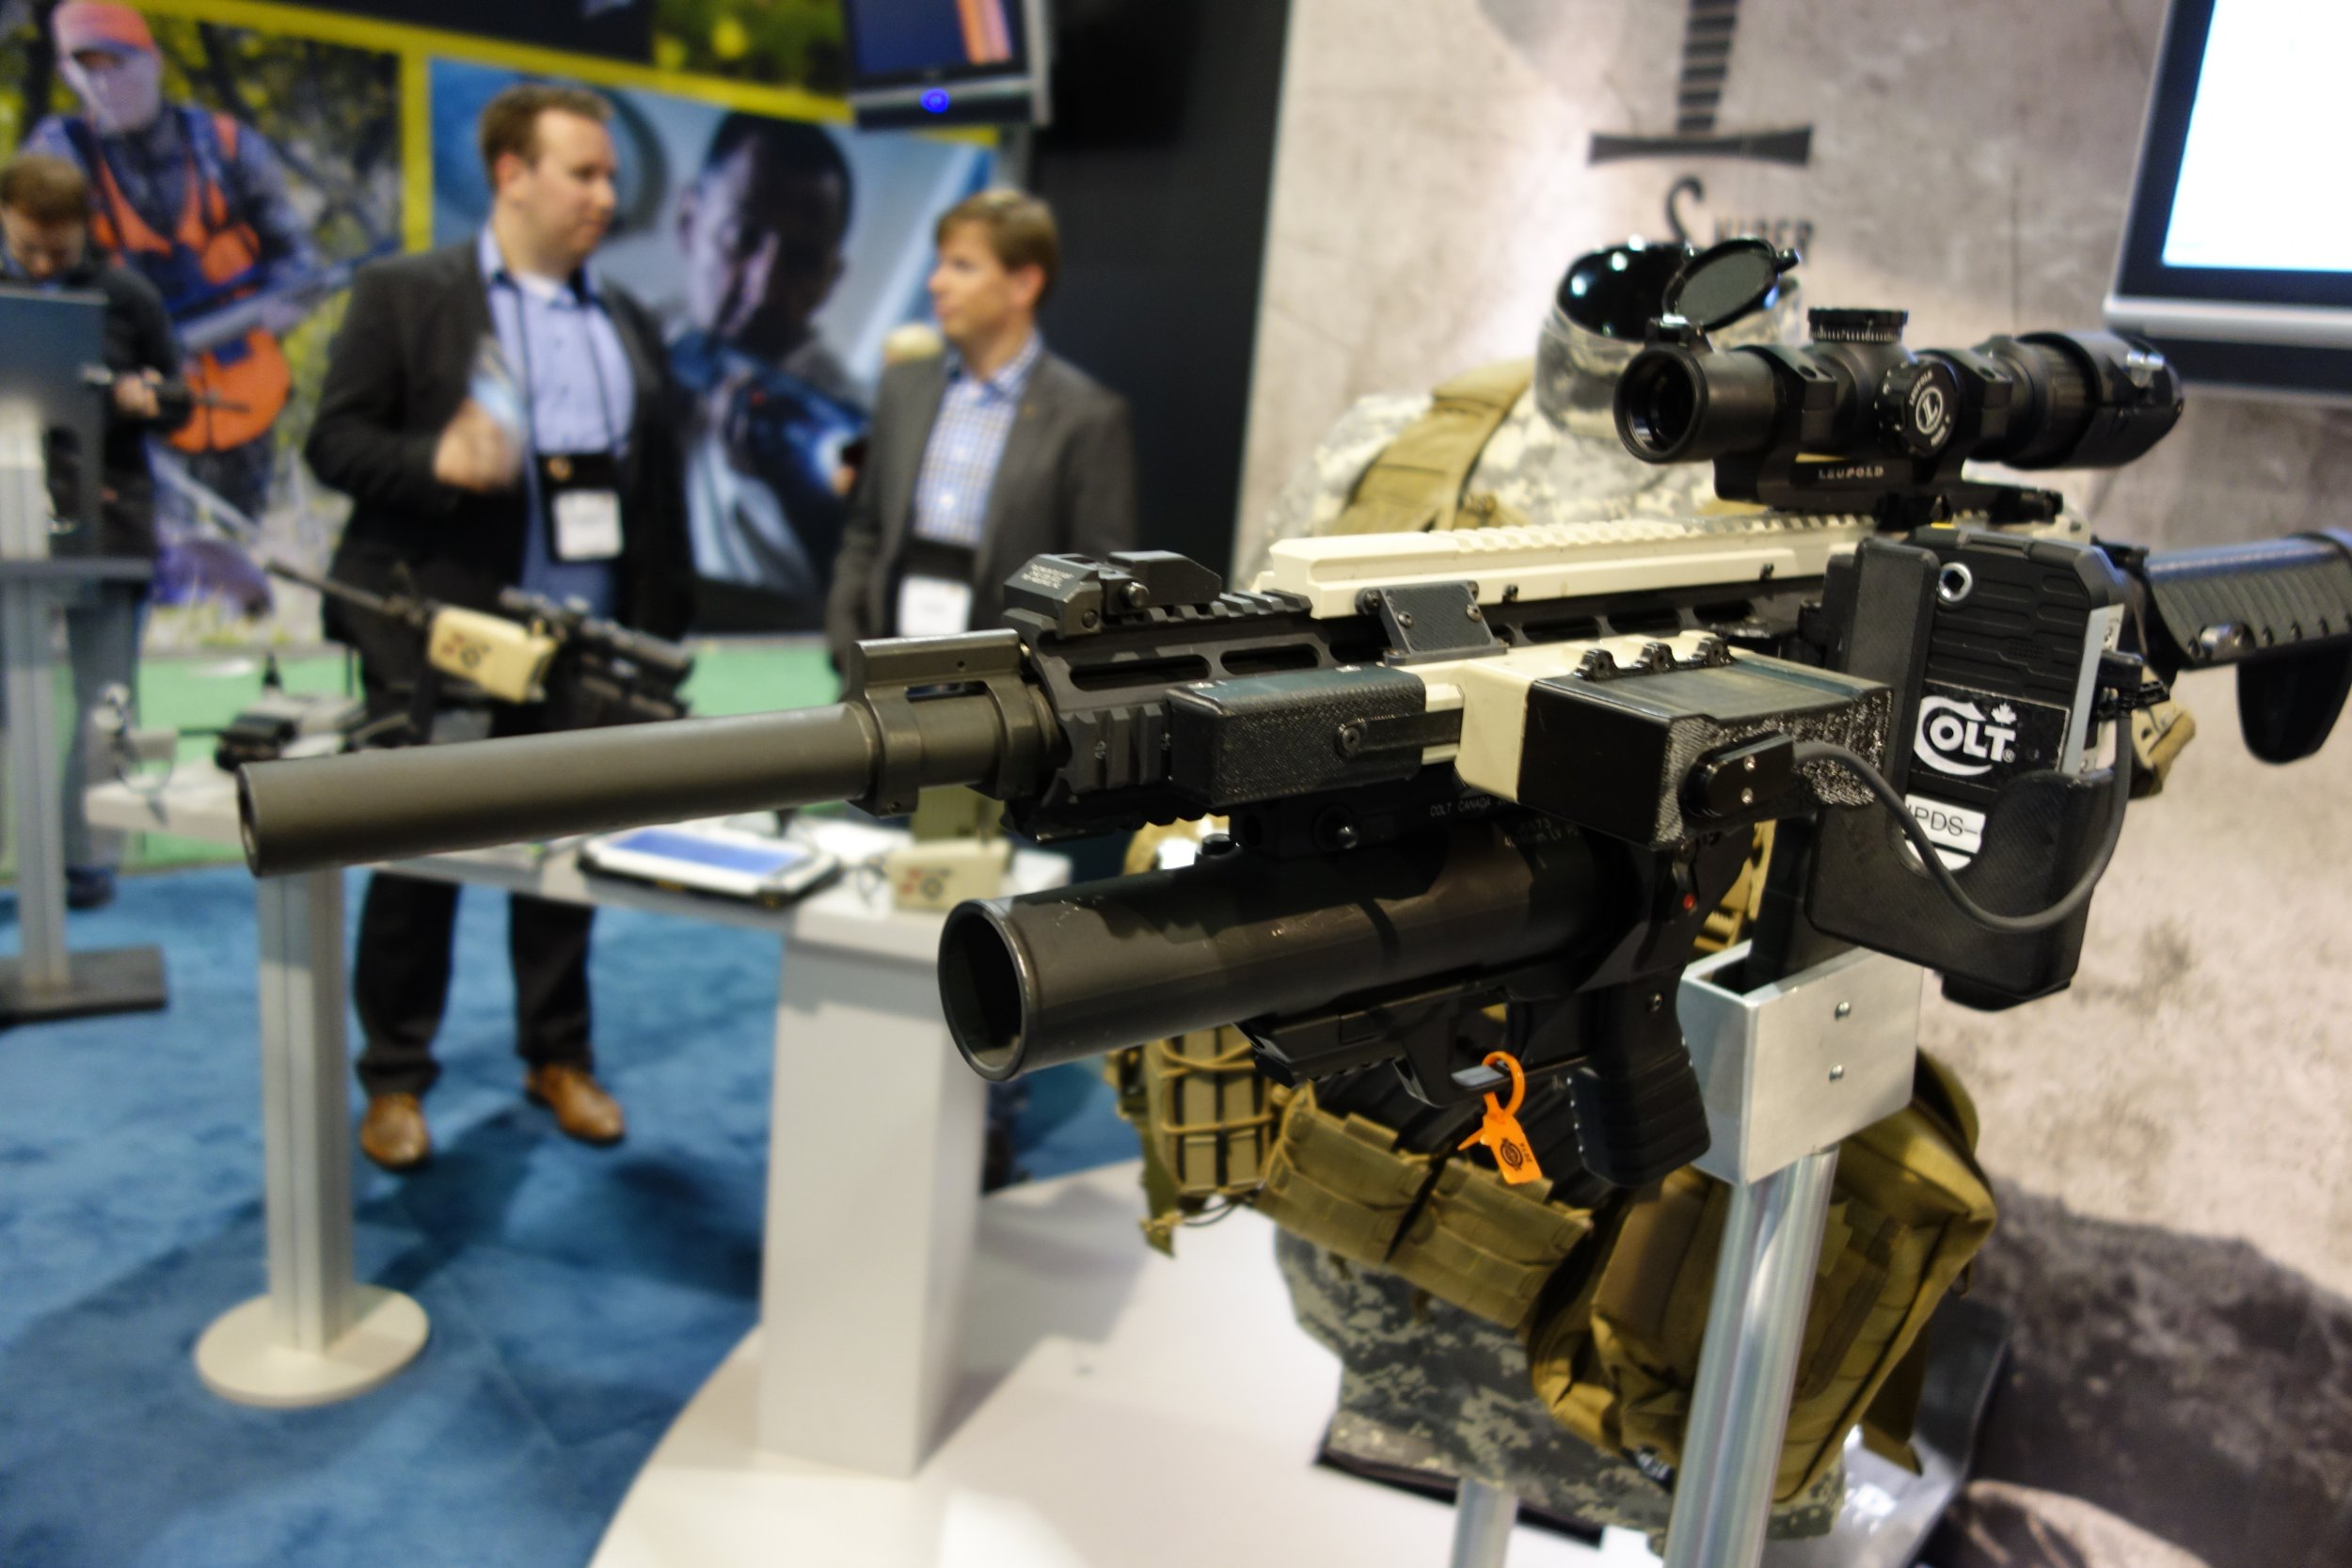 Colt SWORD Sniper Weapon and Observer Reconnaissance Devices Colt M4A1 Carbine SHOT Show 2014 David Crane DefenseReview.com DR 45 Colt SWORD (Sniper Weapon and Observer Reconnaissance Devices) Networked Weapons Targeting System  for Netcentric Warfare (Network Centric Warfare) Demonstrated for DR at SHOT Show 2014 (Video!)